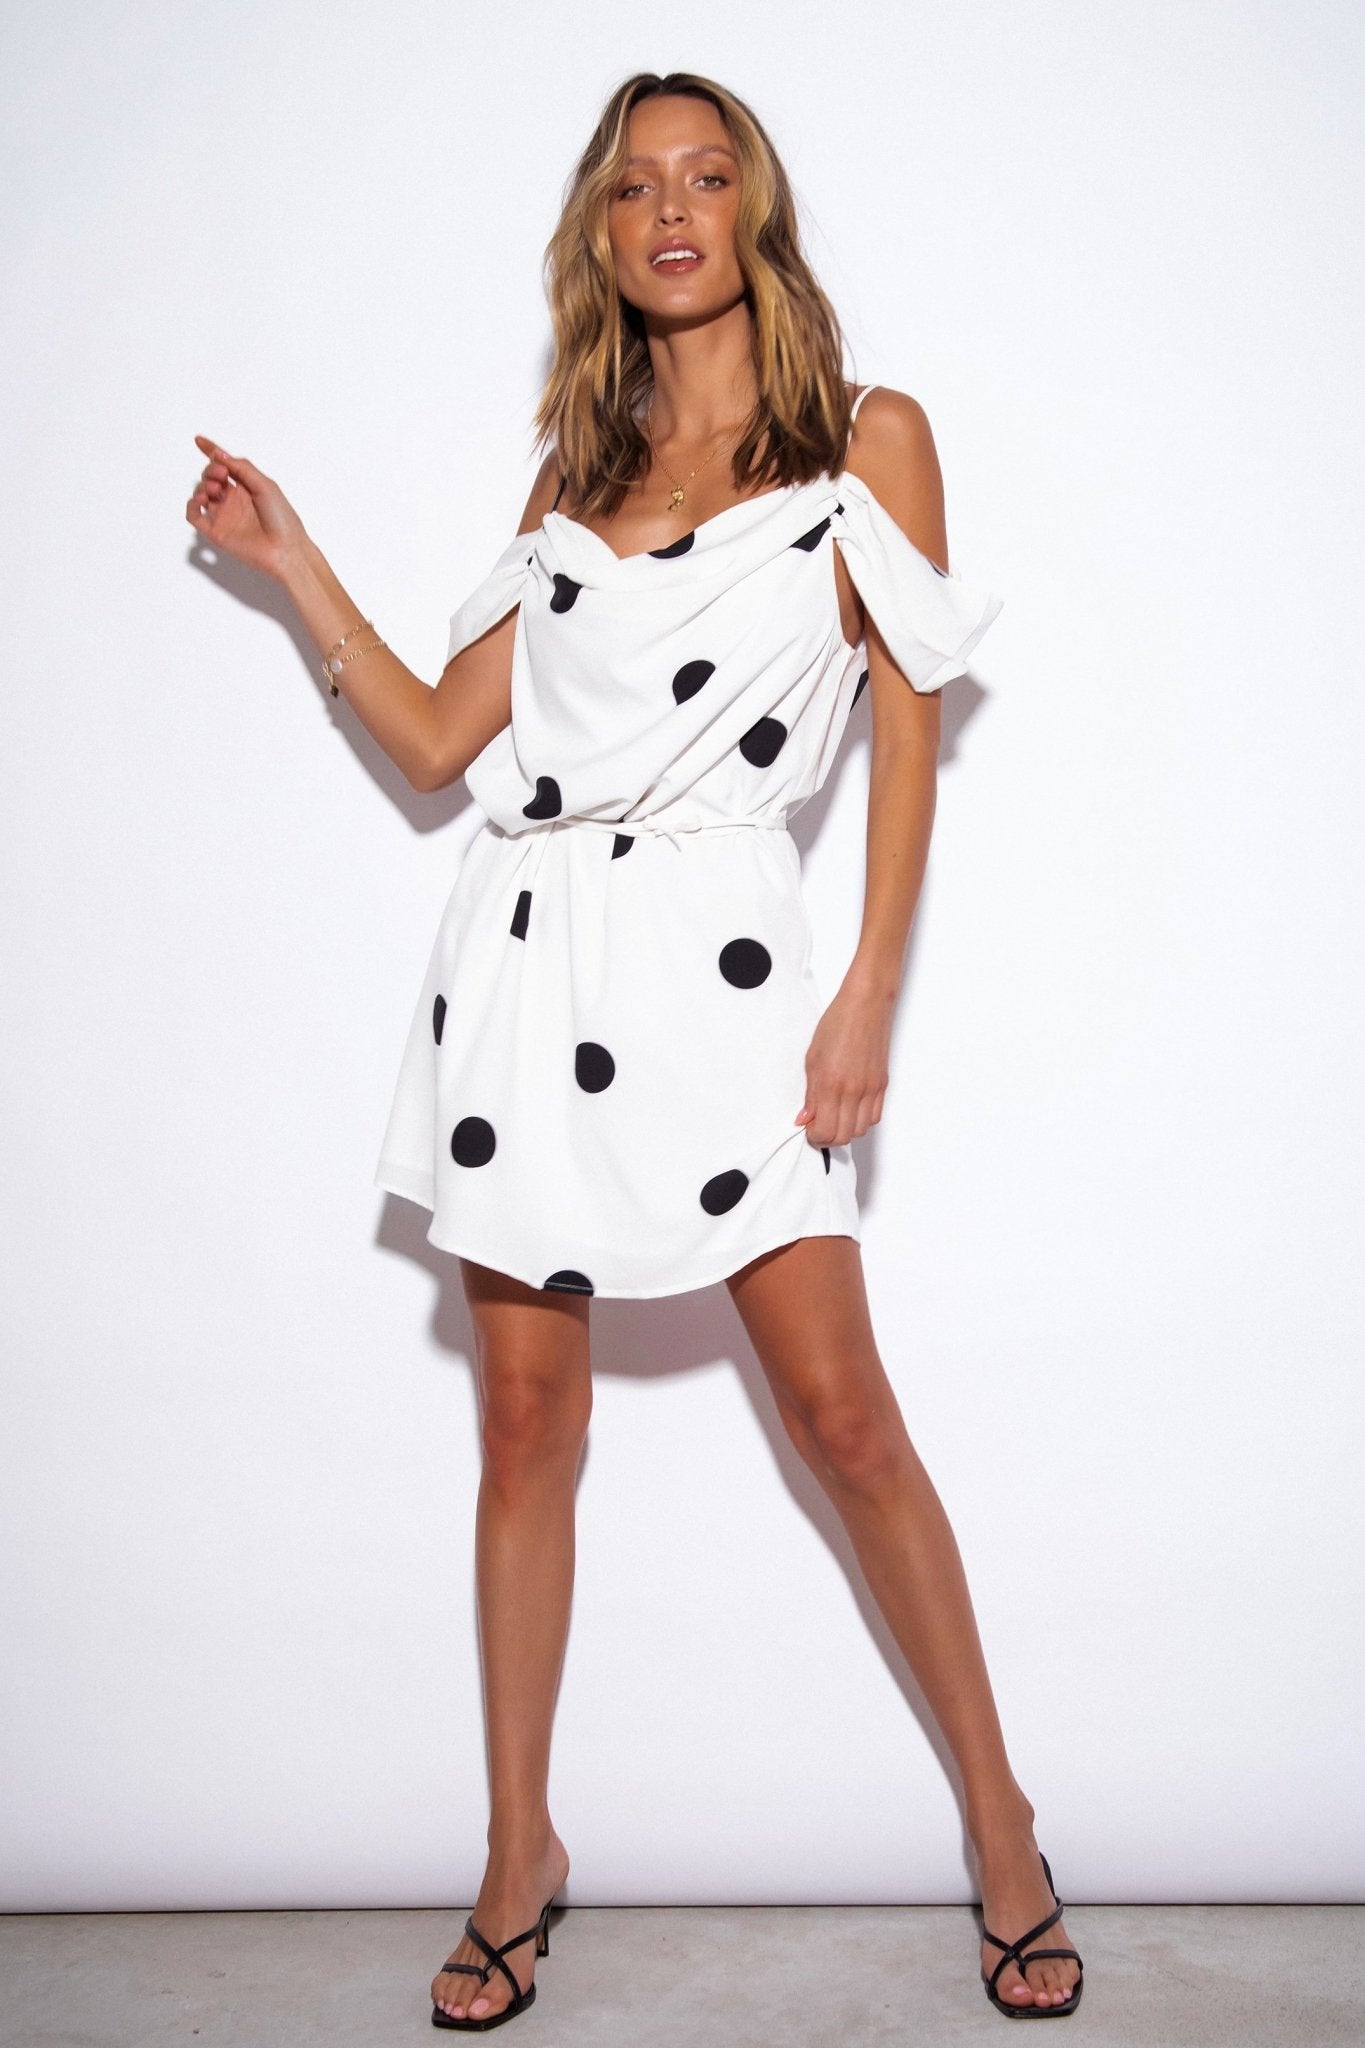 SNDYS Casablanca Dress in White Polkadot - Hey Sara